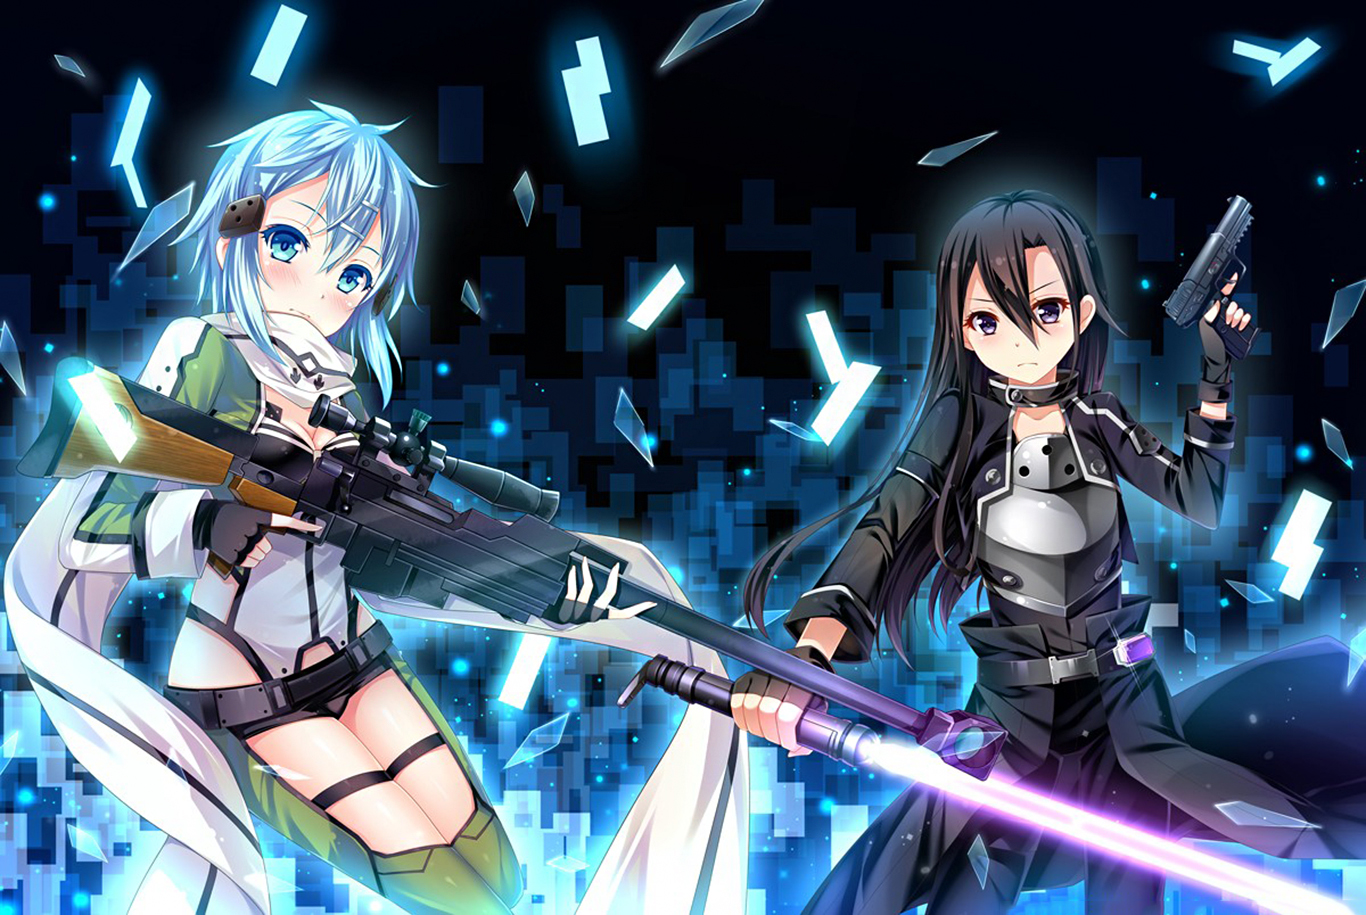 Download Wallpaper From Anime Sword Art Online Ii With Tags